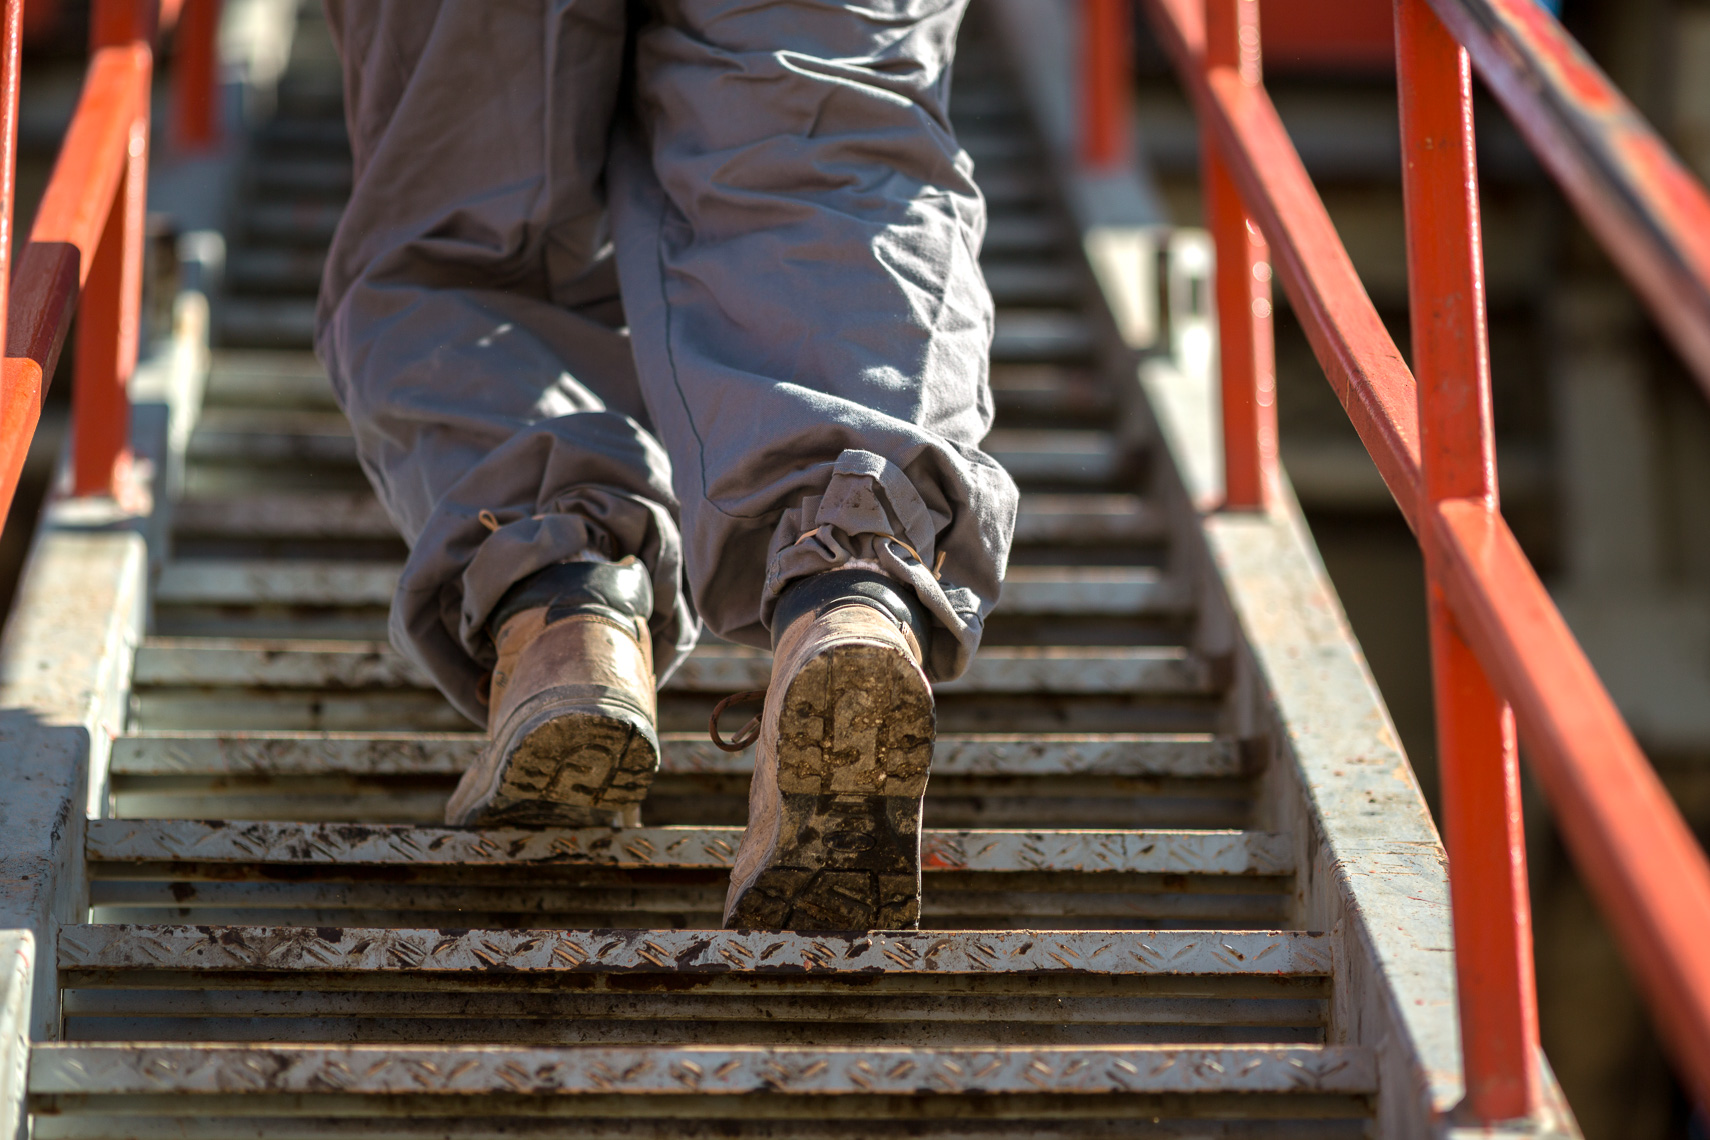 Oil & Gas Worker Walking Up Stairs - Photographed By Jason Risner of San Antonio, Texas